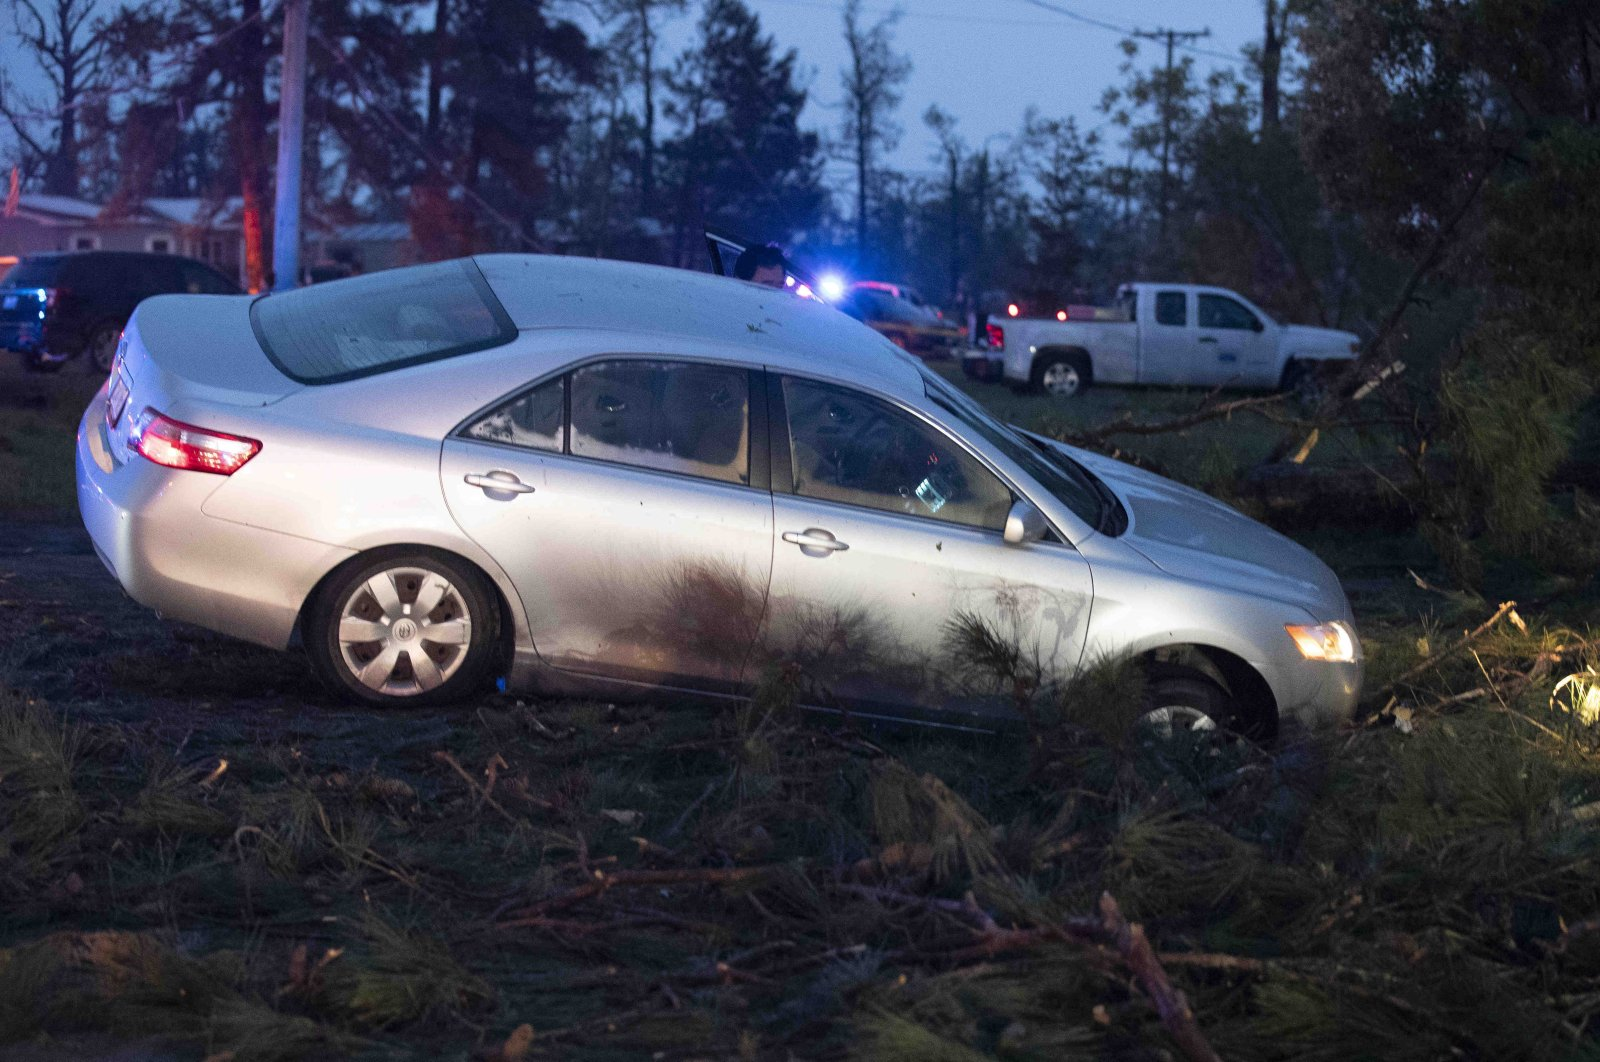 A car is seen in a ditch in Onalaska, Texas, after a tornado touched down in the area Wednesday, April 22, 2020. (AP Photo)